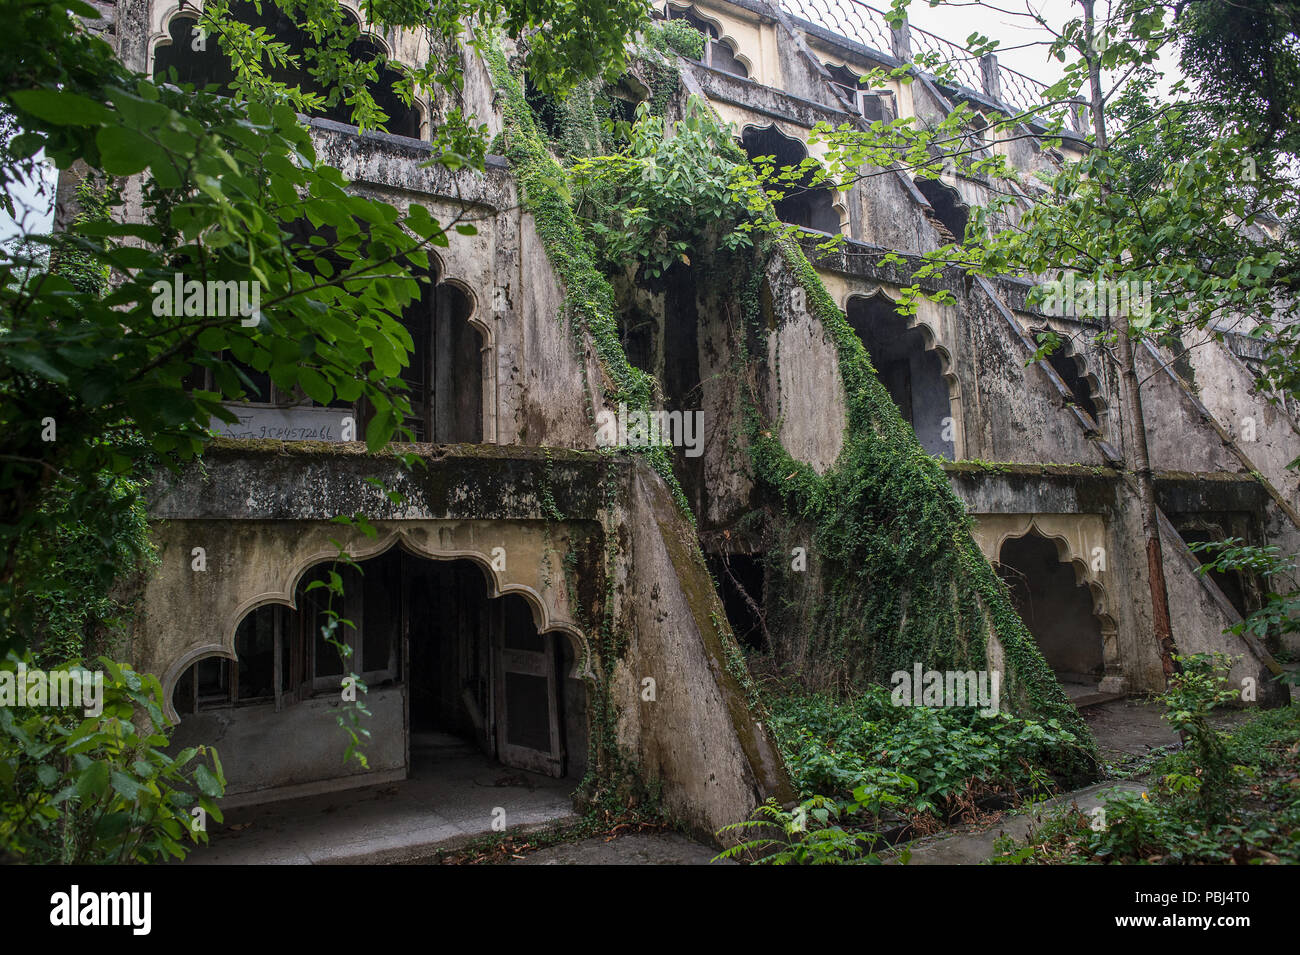 The Swarg Ashram by Maharishi Mahesh, visited by The Beatles, in the 60s. Rishikesh, India - Stock Image